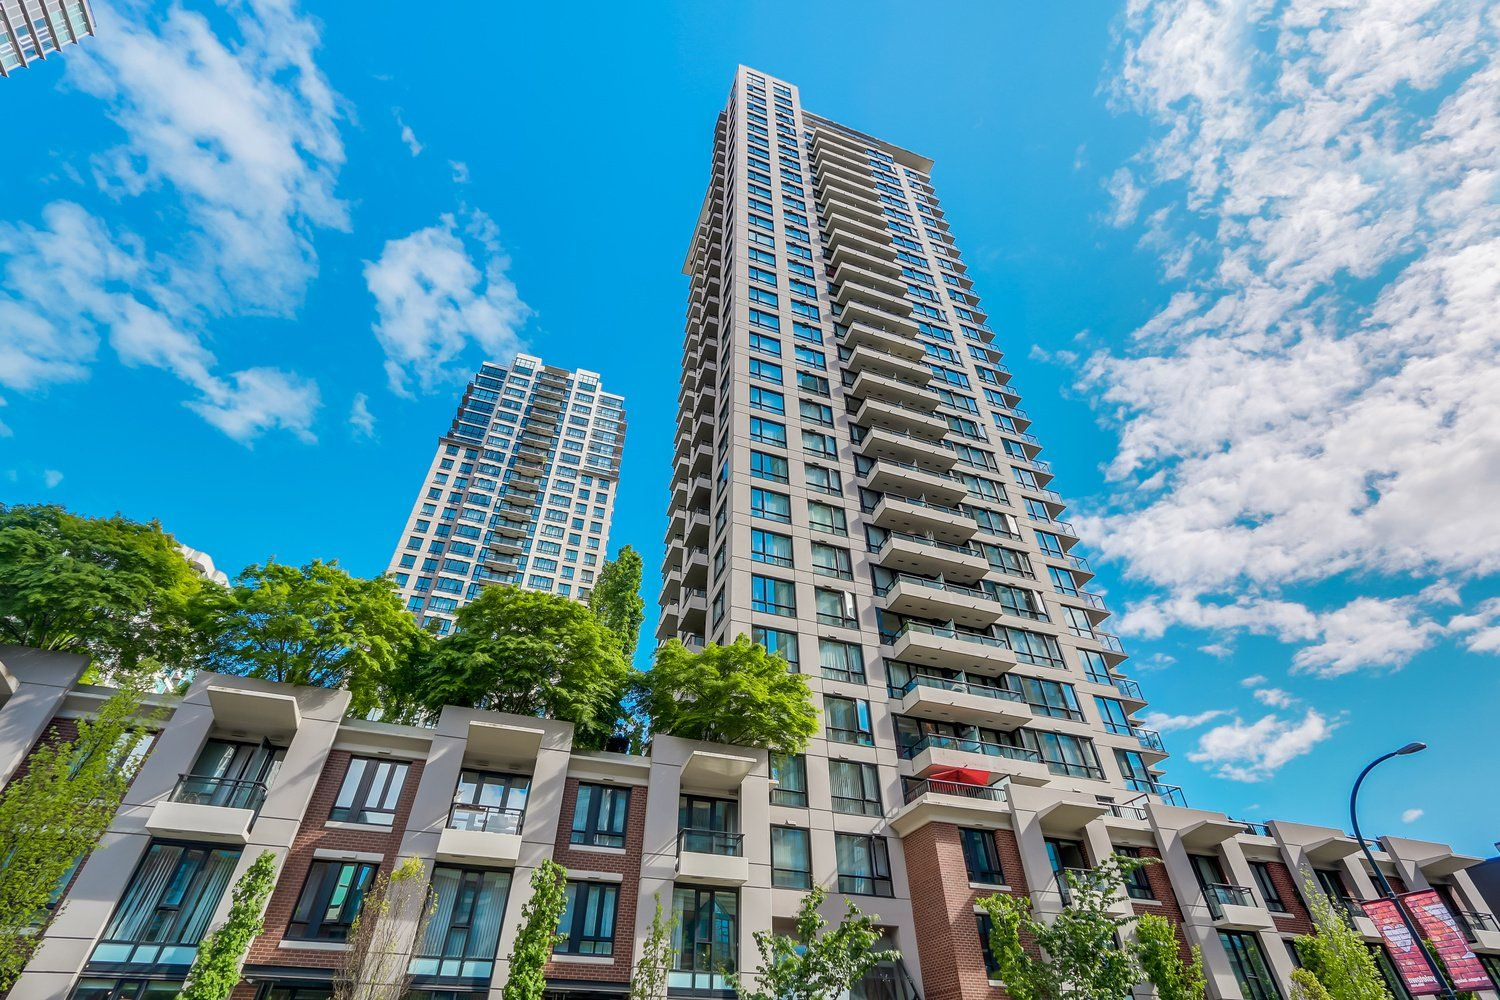 Main Photo: 928 Homer Street in Vancouver: Yaletown Condo for rent (Vancouver West)  : MLS®# AR155